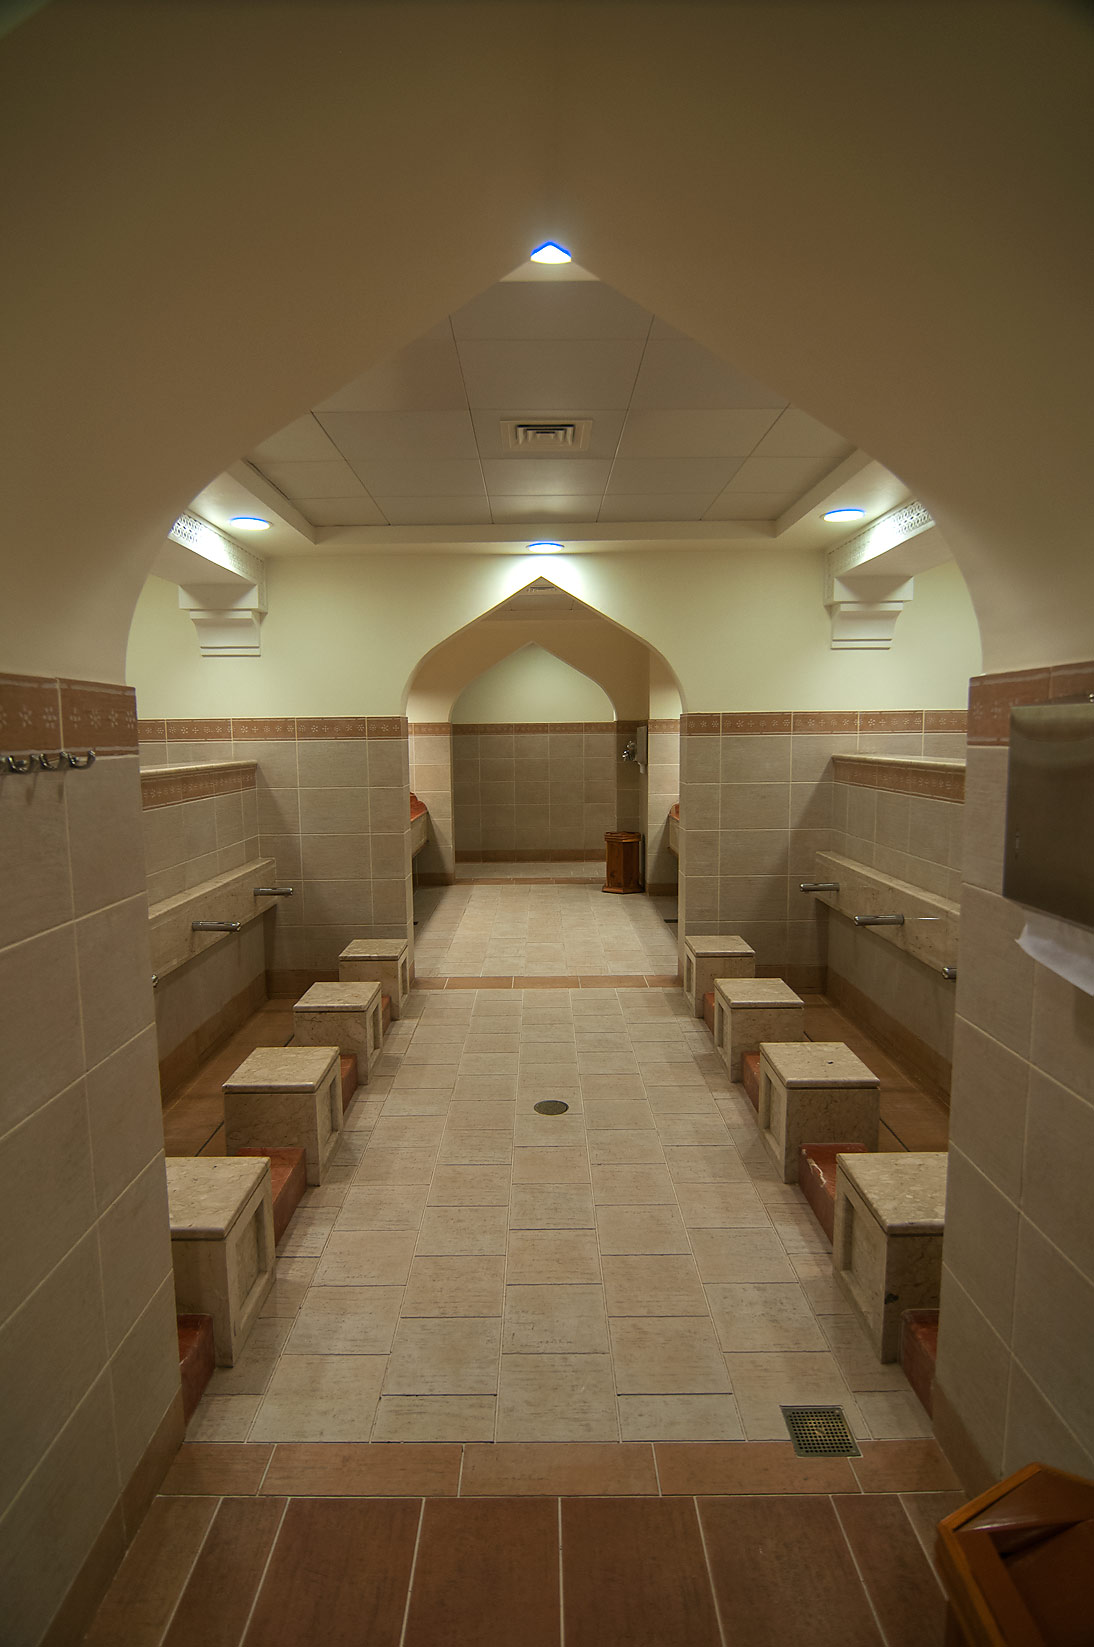 Ablution room (ritual washing facilities) of...Ibn Abdul Wahhab Mosque). Doha, Qatar